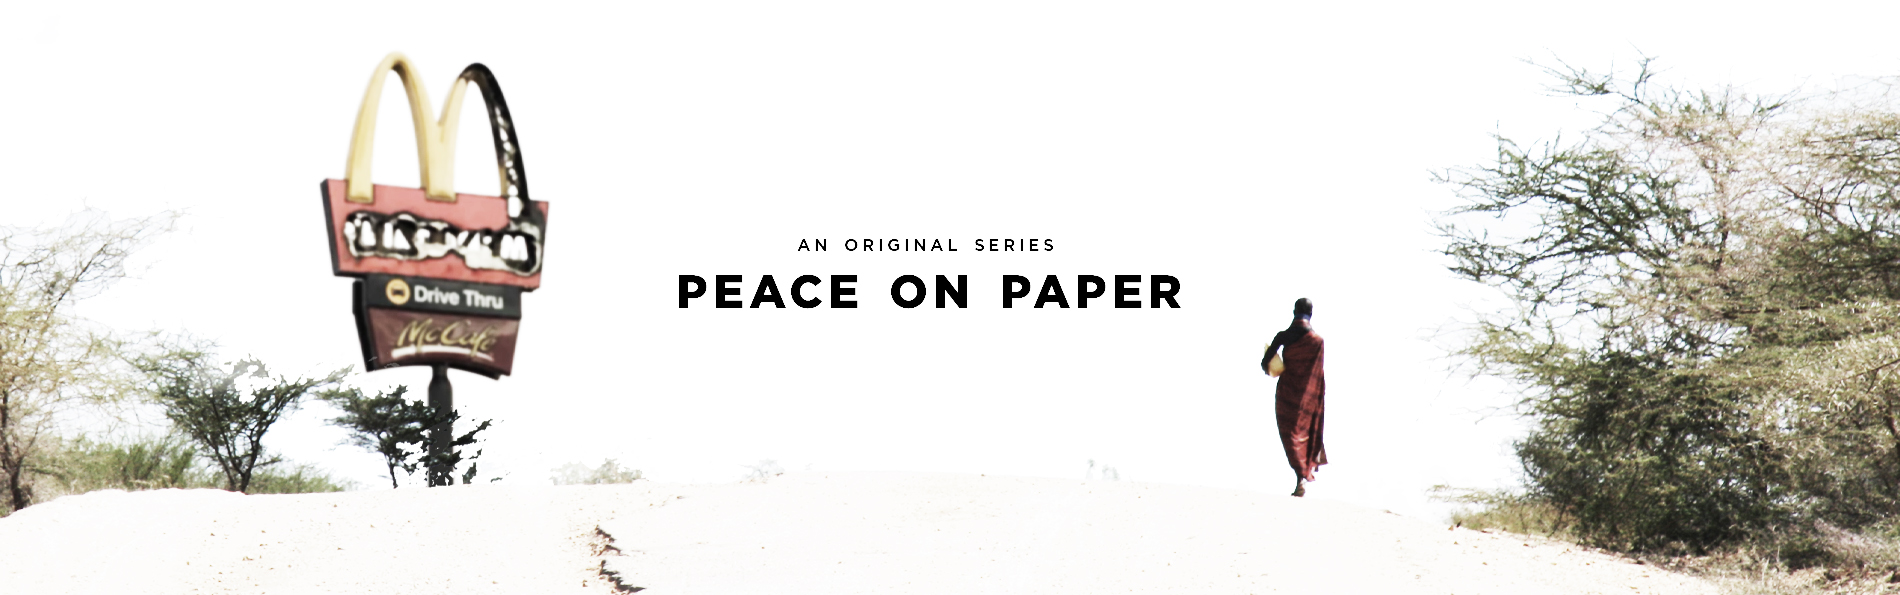 Peace on paper